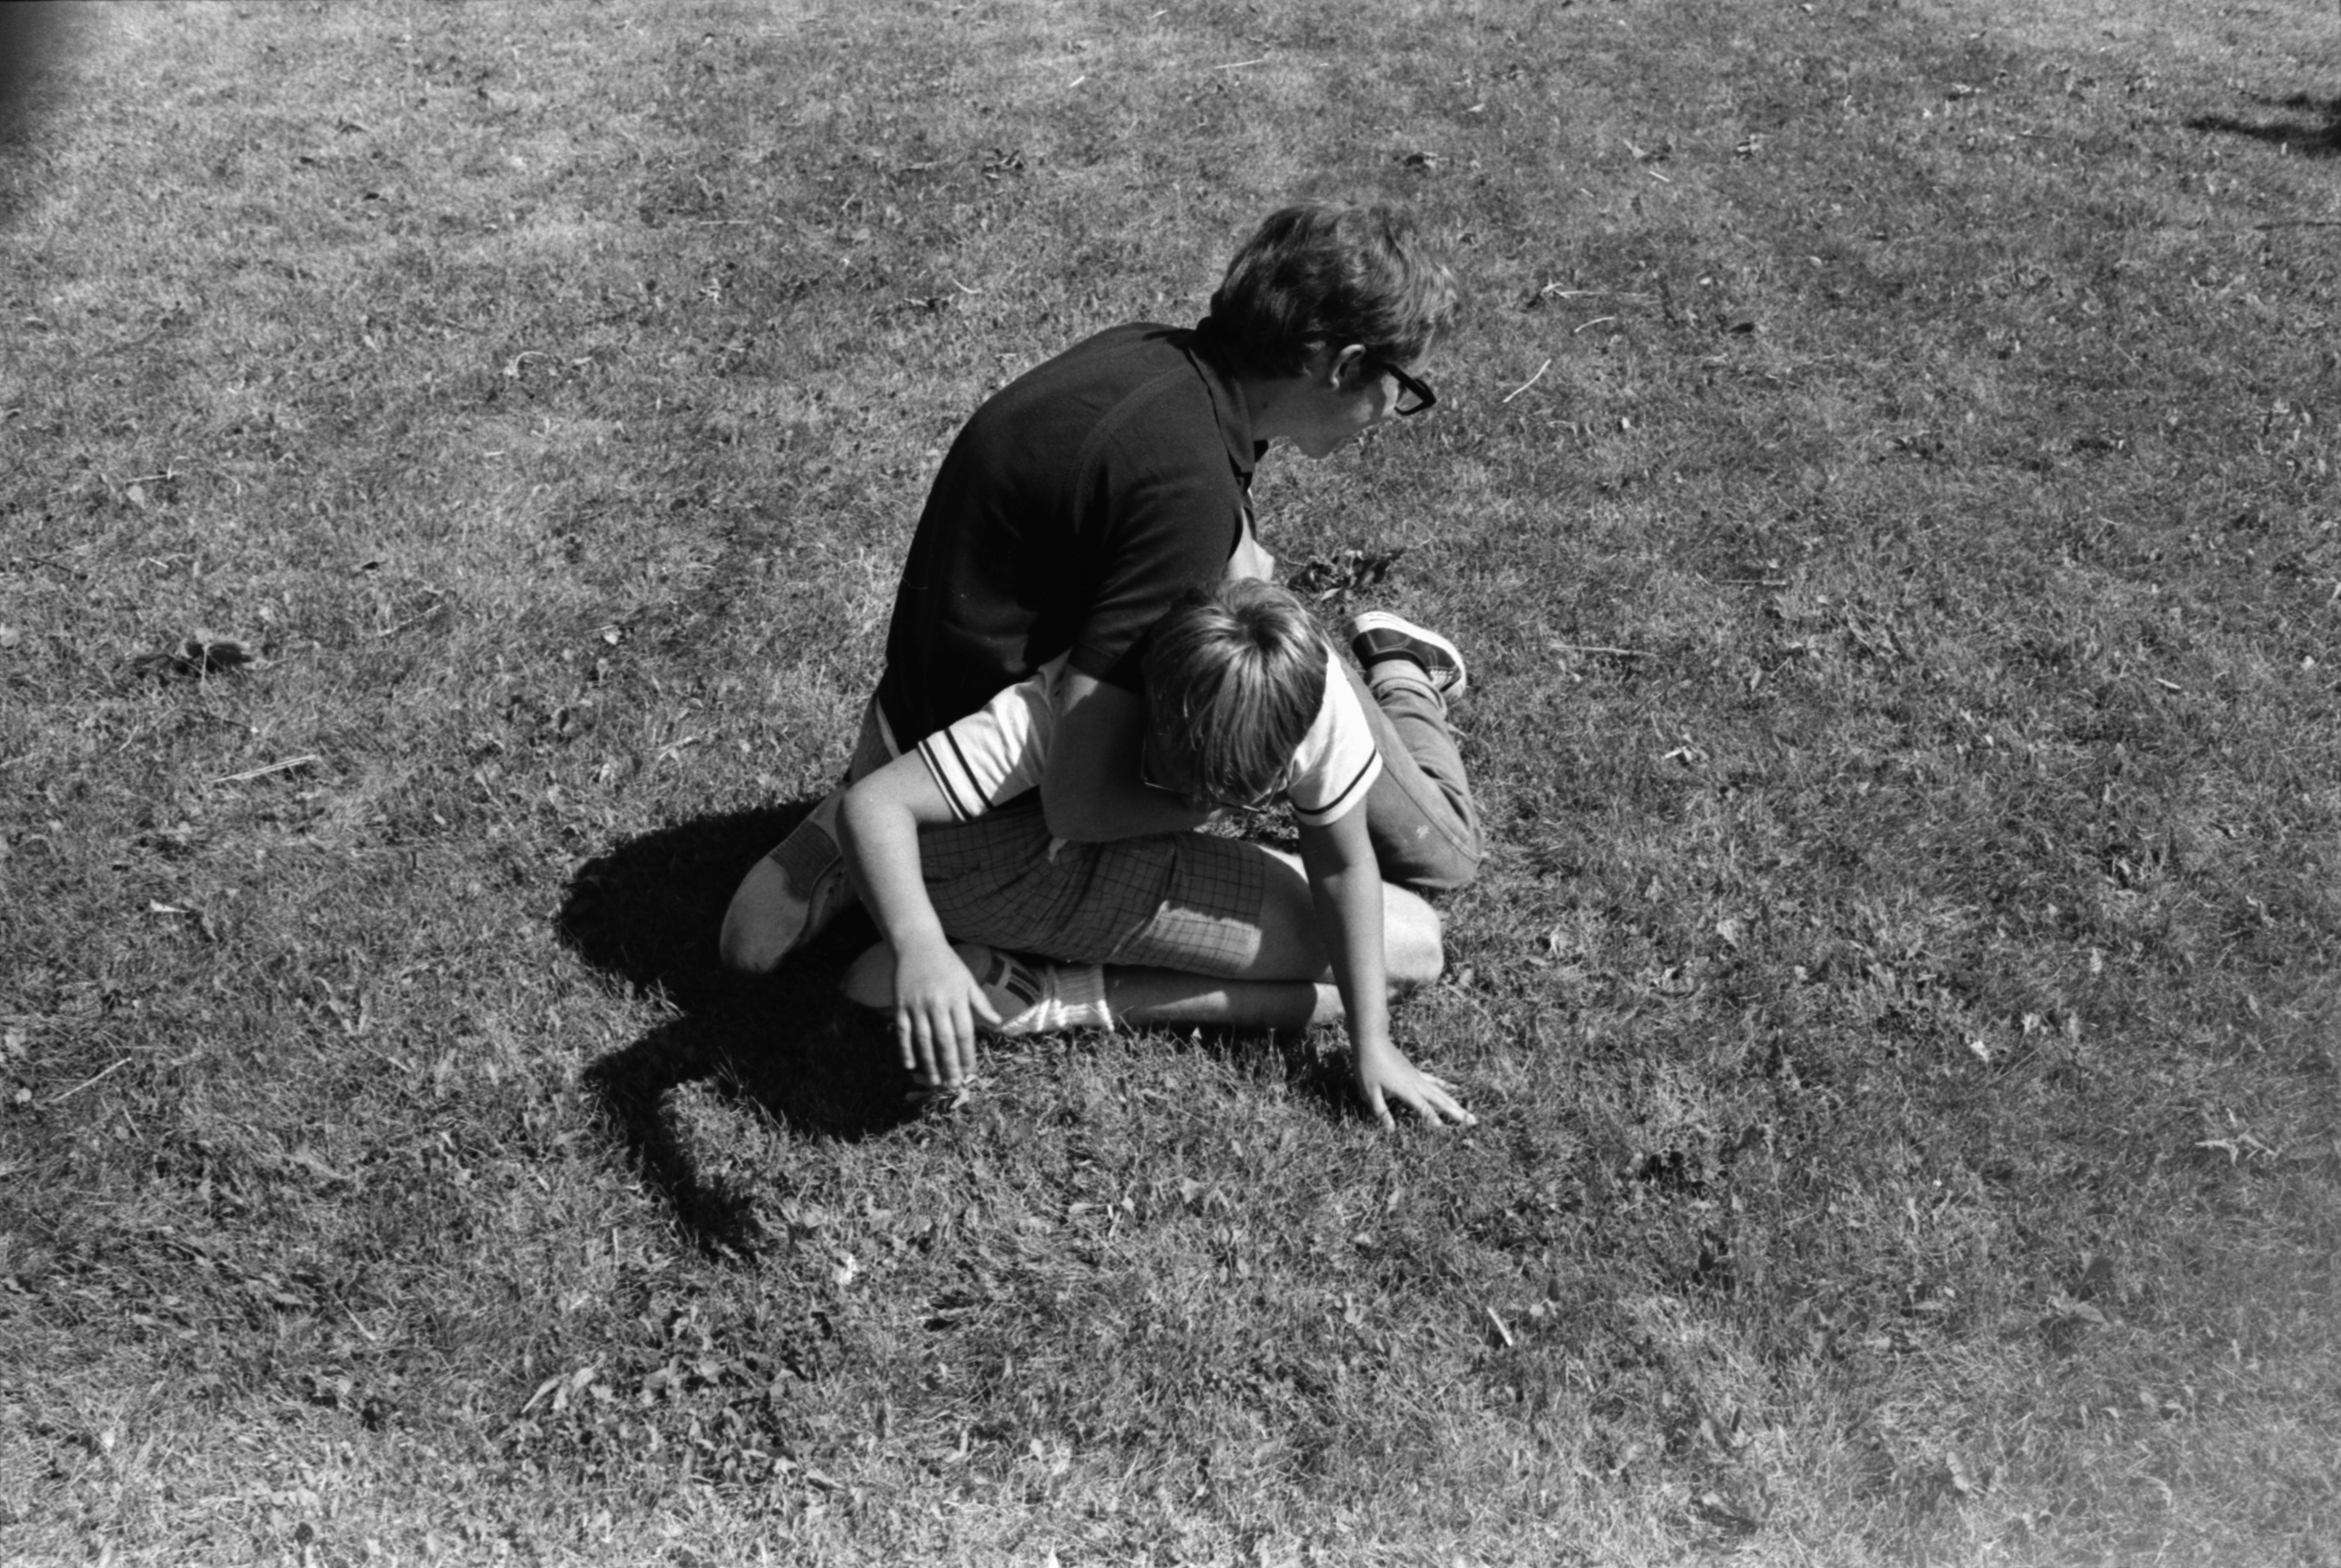 Counselor Carl Fredrickson holds one of the young boys attending Therapeutic Day Camp, July 1969 image